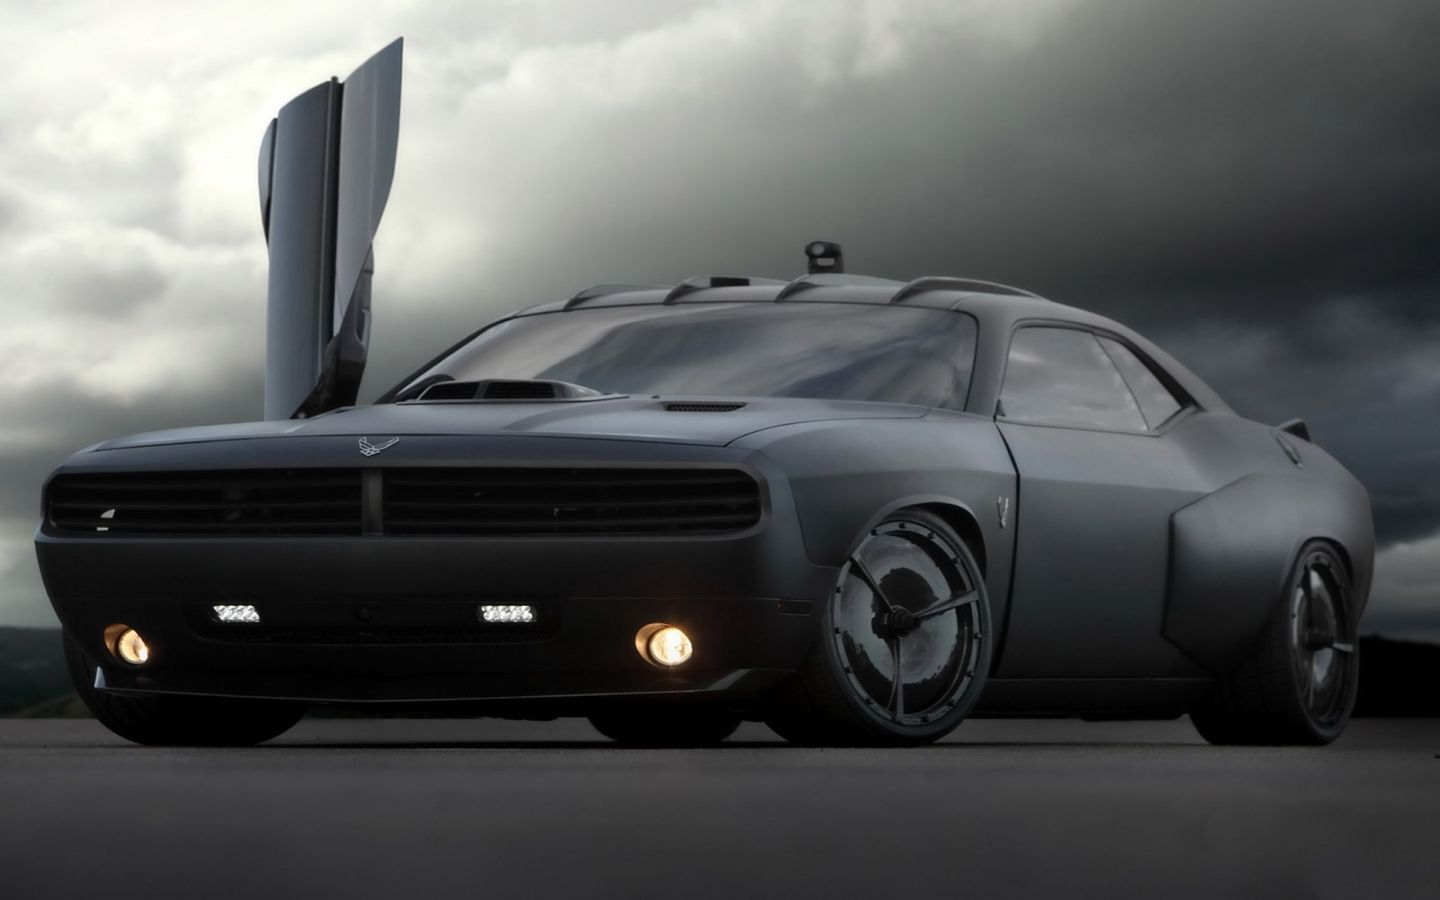 The us air force has teamed up with galpin auto sports and built the stealth looking dodge challenger vapor part muscle car part fighter jet